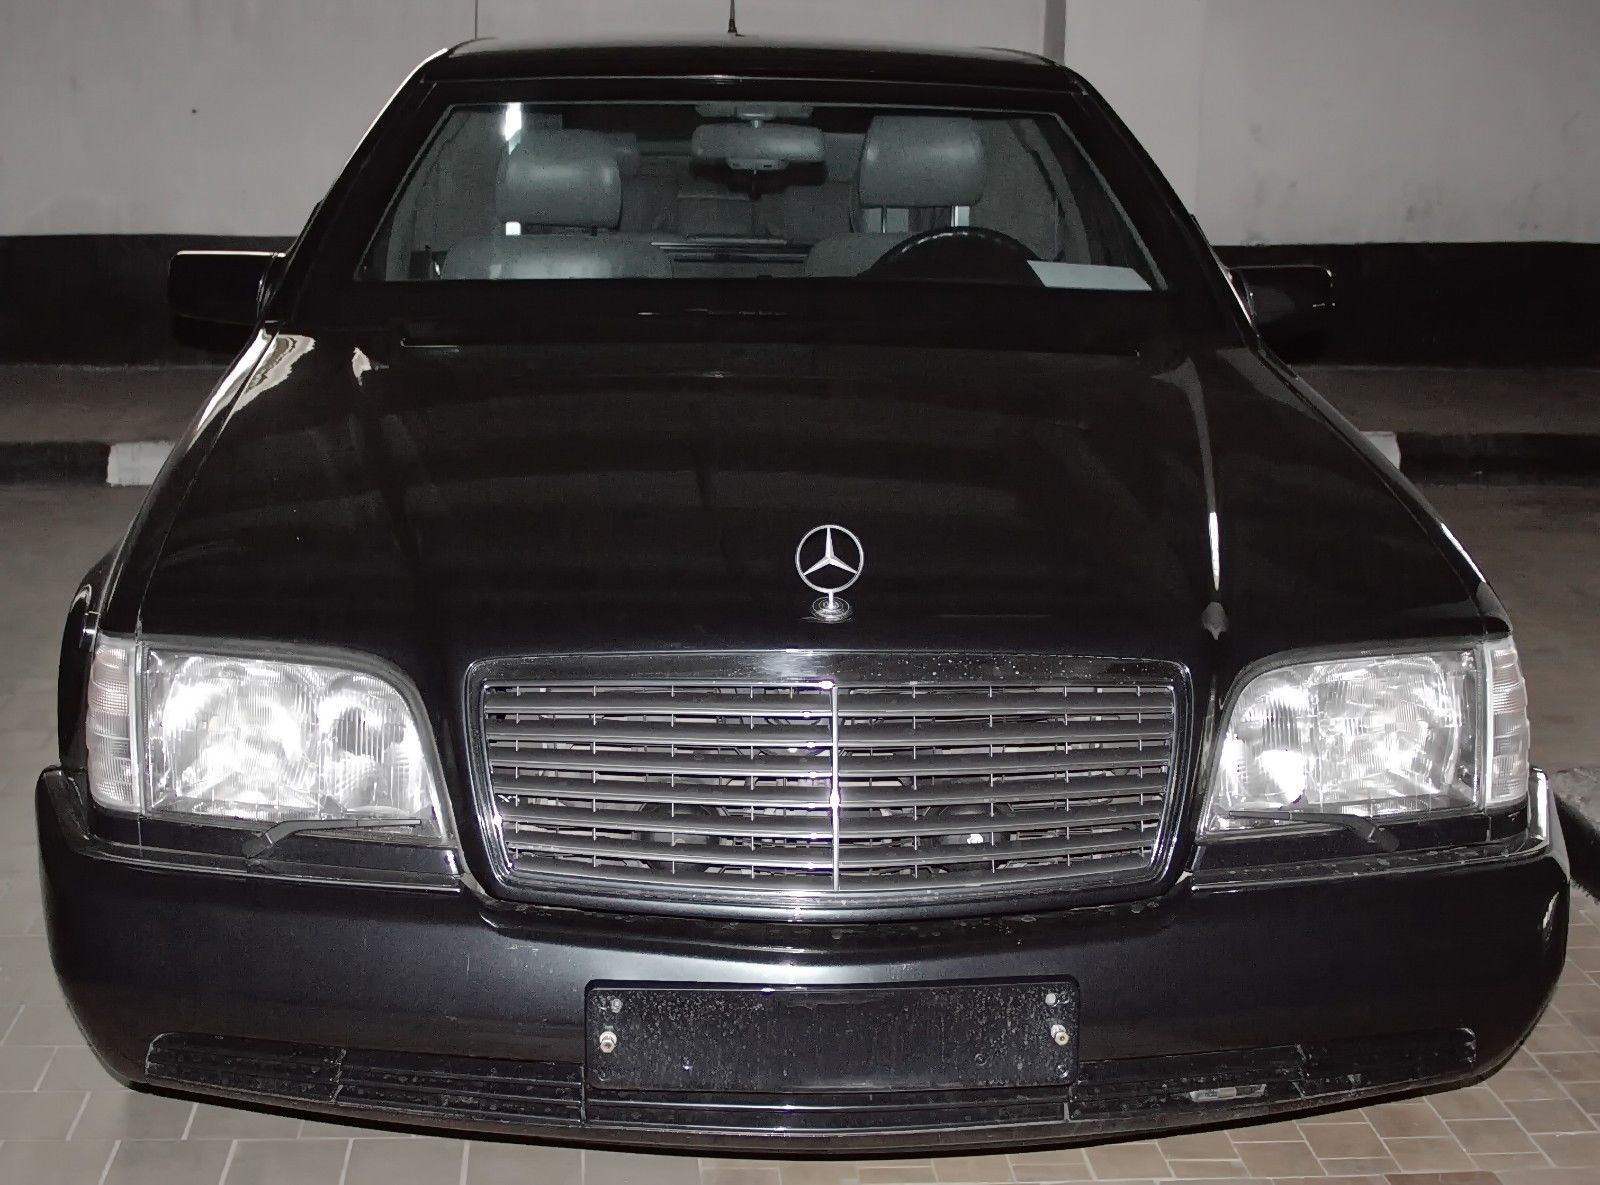 Mercedes Benz S600 Guard for sale (2)